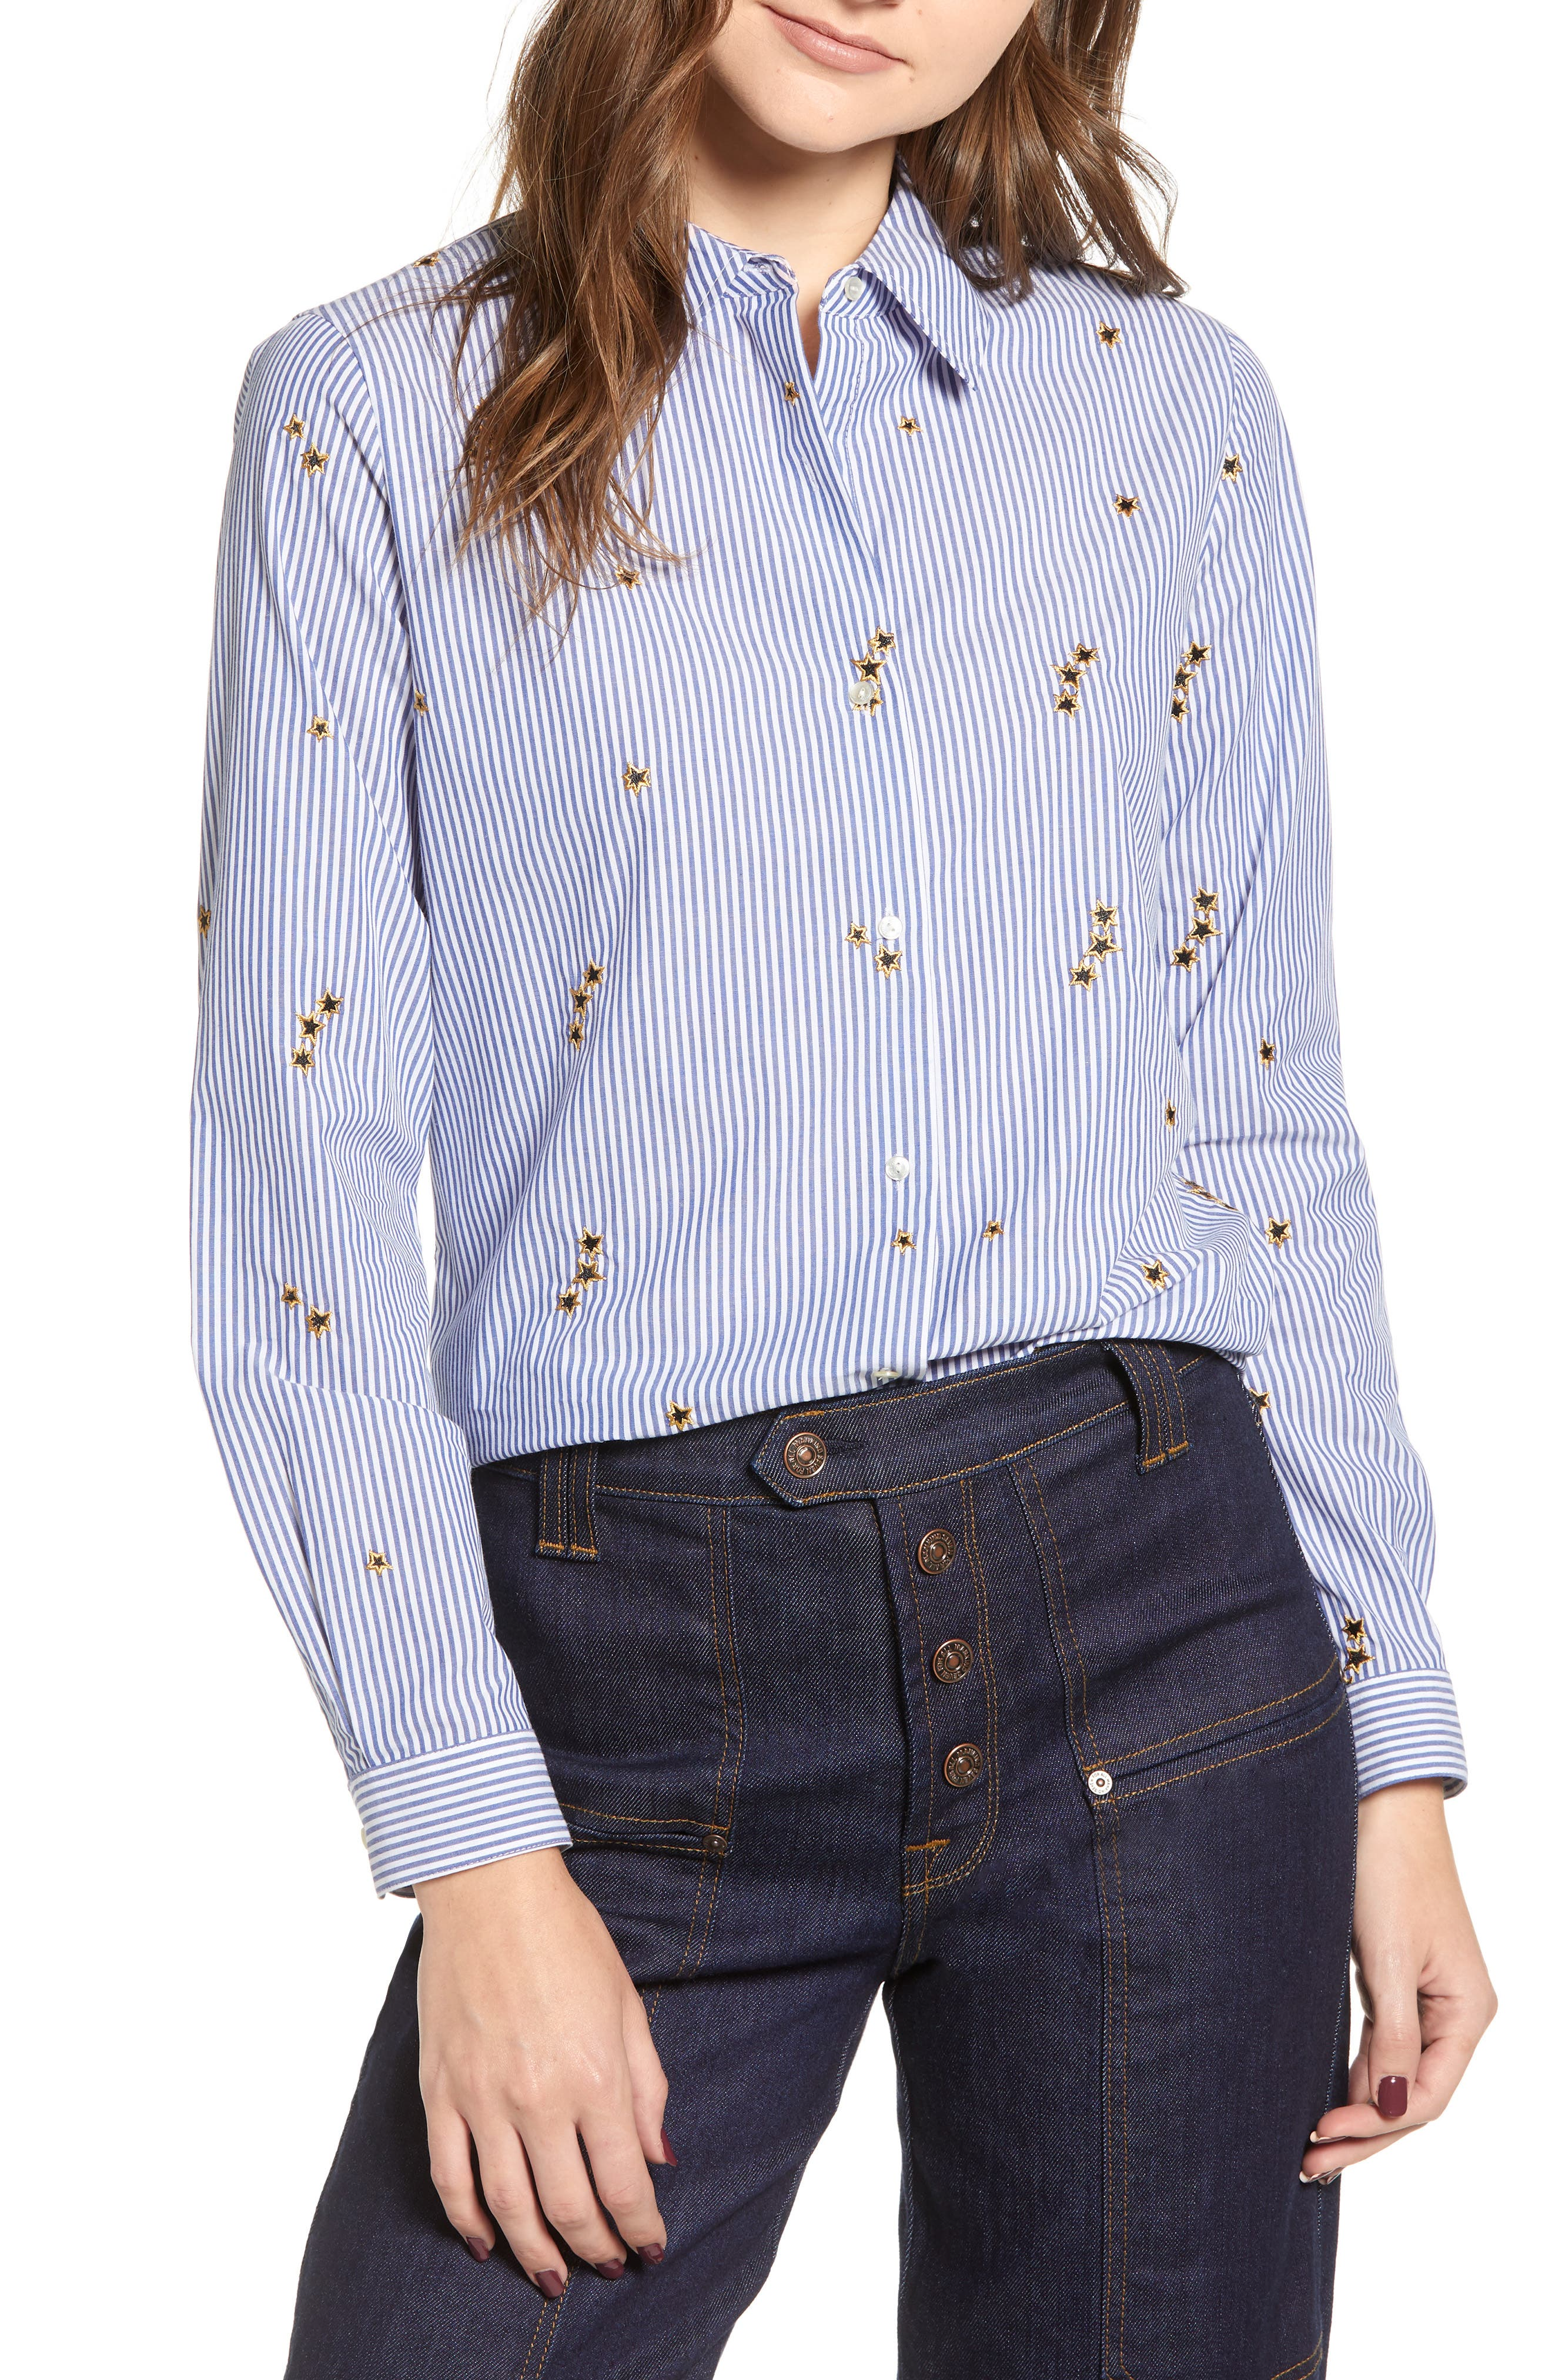 Relaxed Fit Star Detail Stripe Cotton Blouse,                         Main,                         color, BLUE WHITE PIN STRIPES